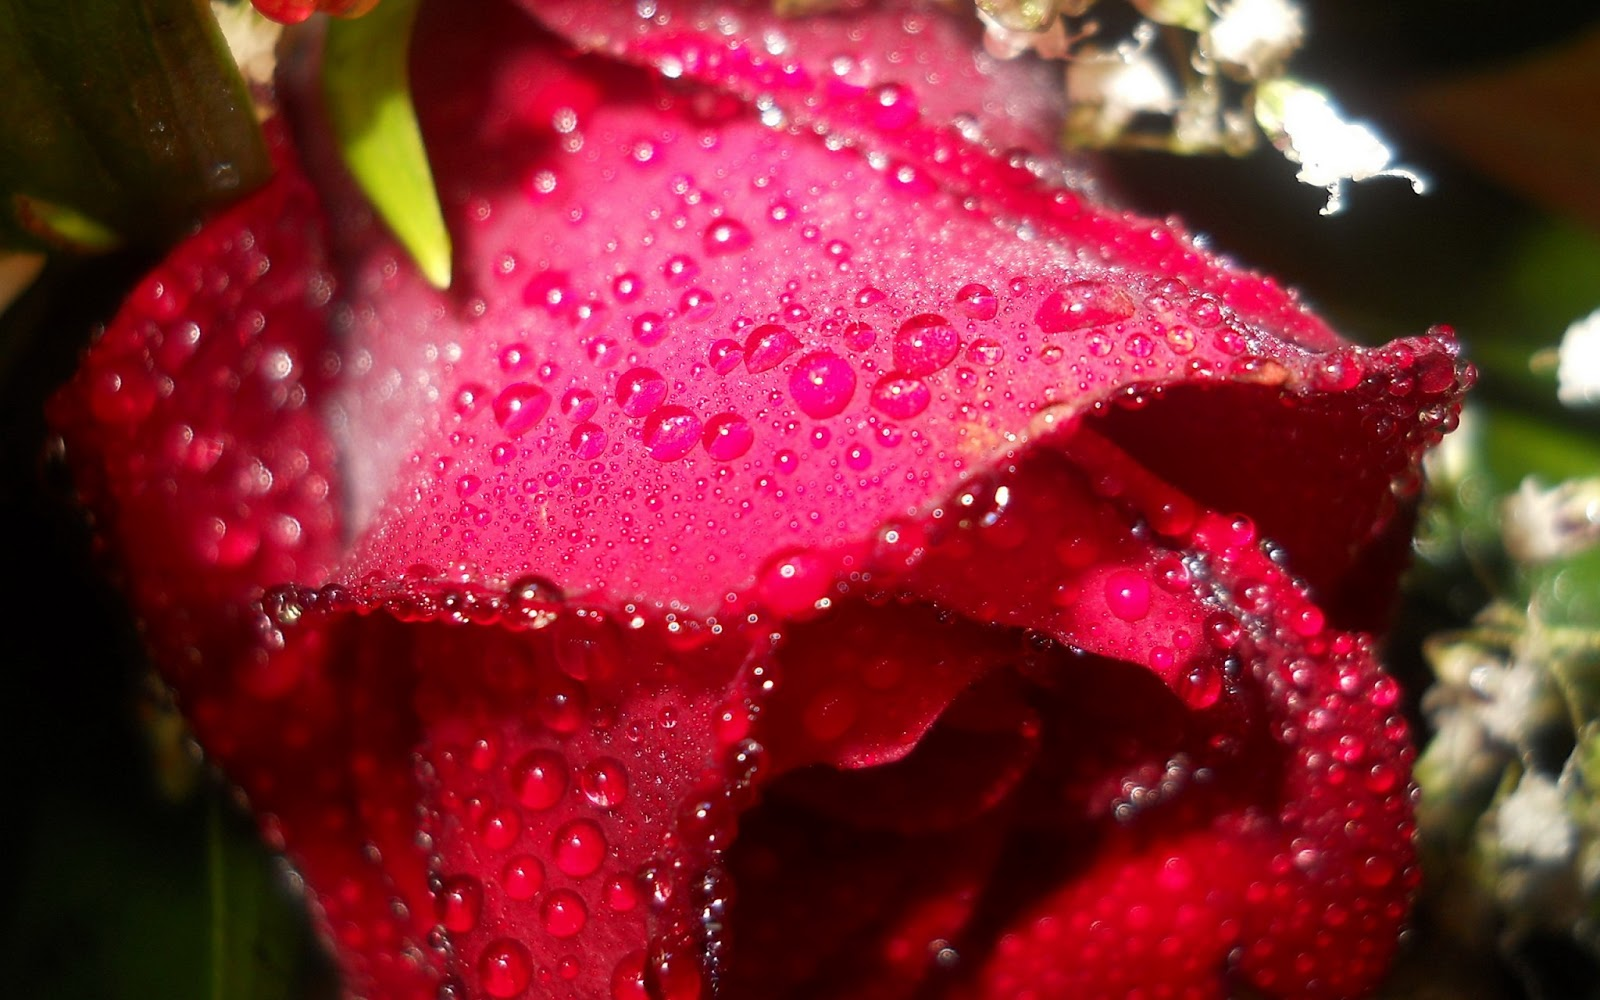 Hd Wallpaper Girl Love Beautiful Roses For Most Beautiful Girl In The Universe